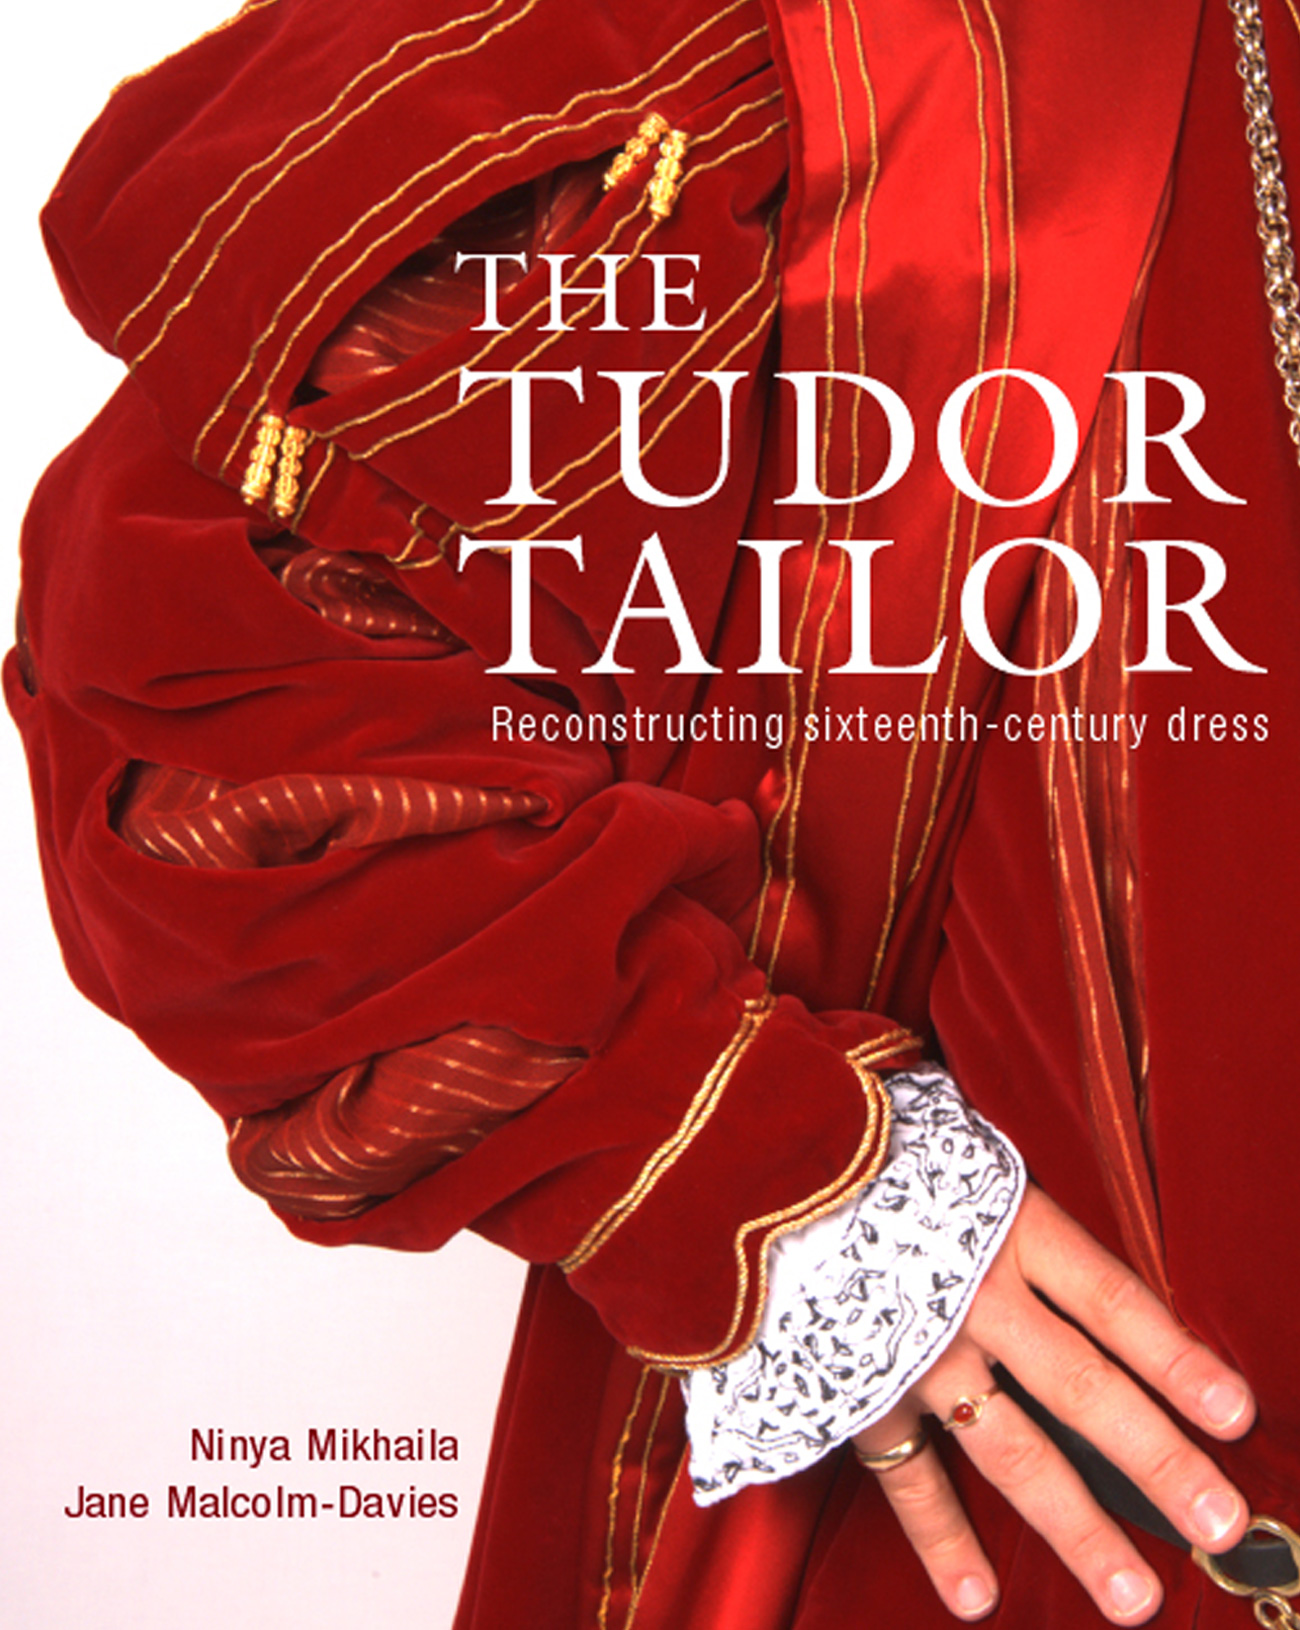 The Tudor Tailor